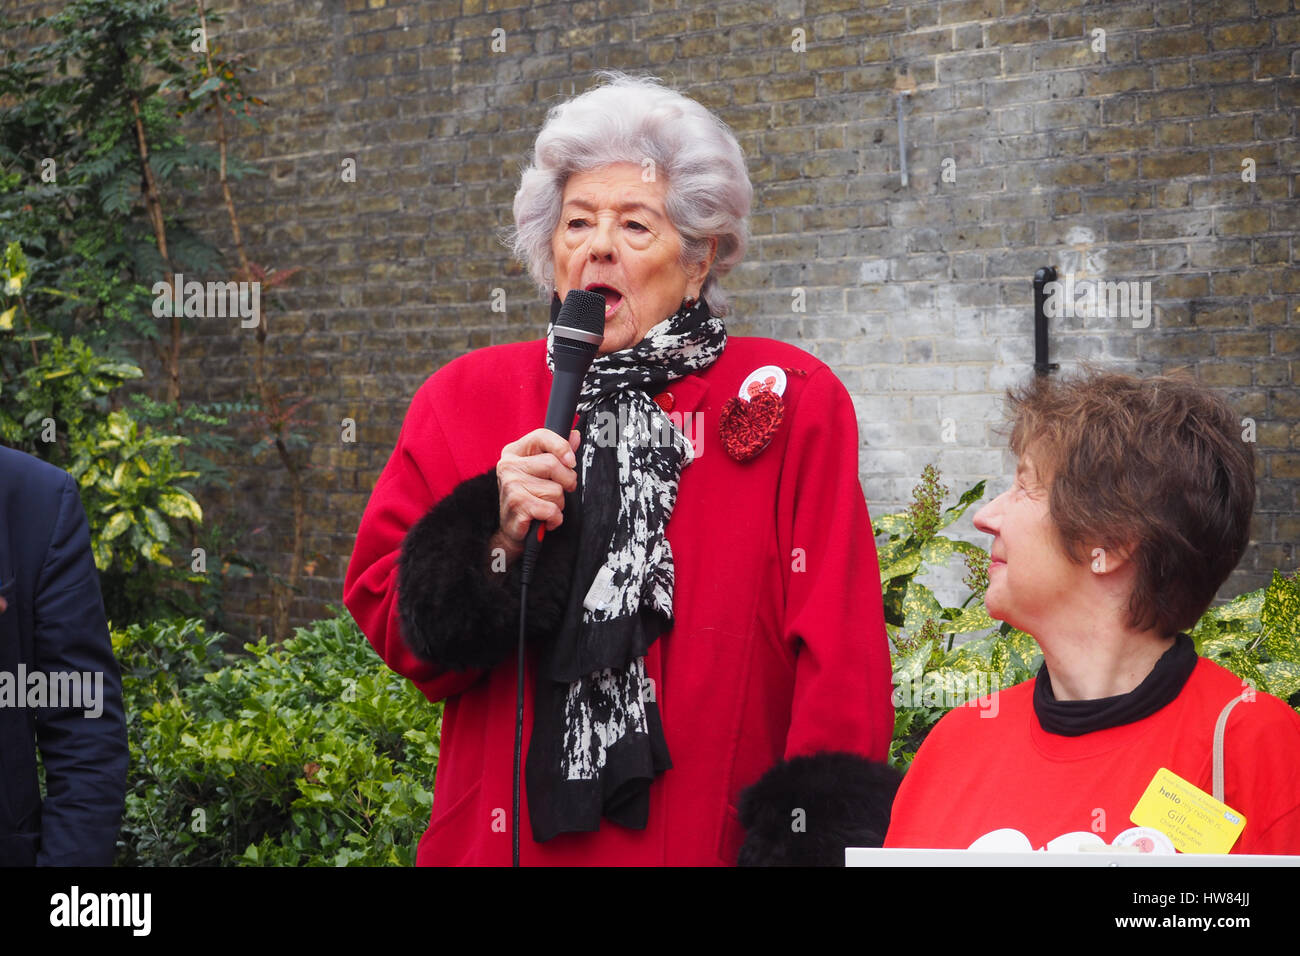 London, UK,18th March 2017.Betty Boothroyd former Speaker of the Commons sends marchers off with a defiant speech Stock Photo